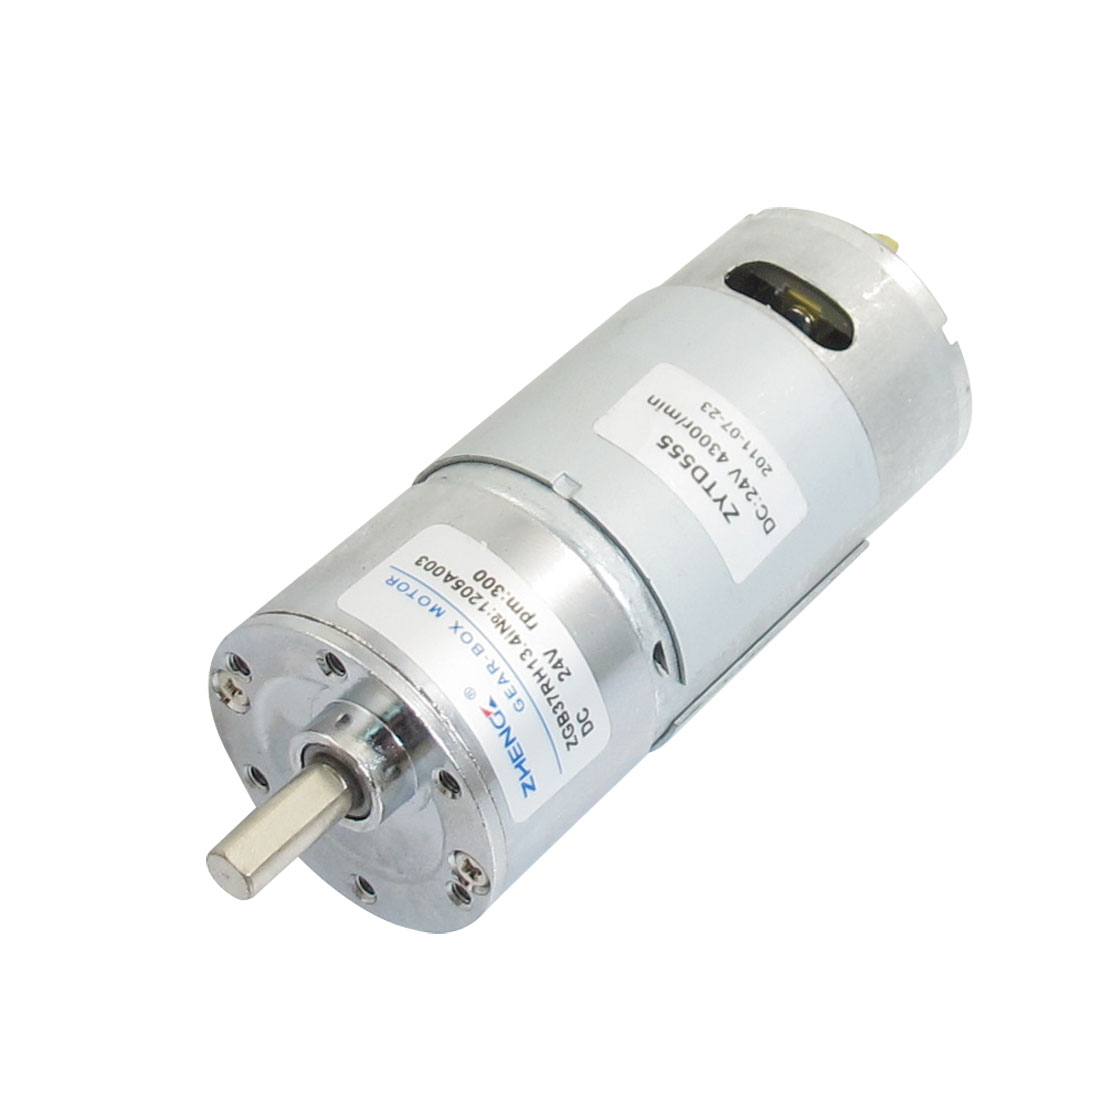 ZGB37RH 37mm x 89mm Body 2P Machine Geared Motor 24VDC 300RPM